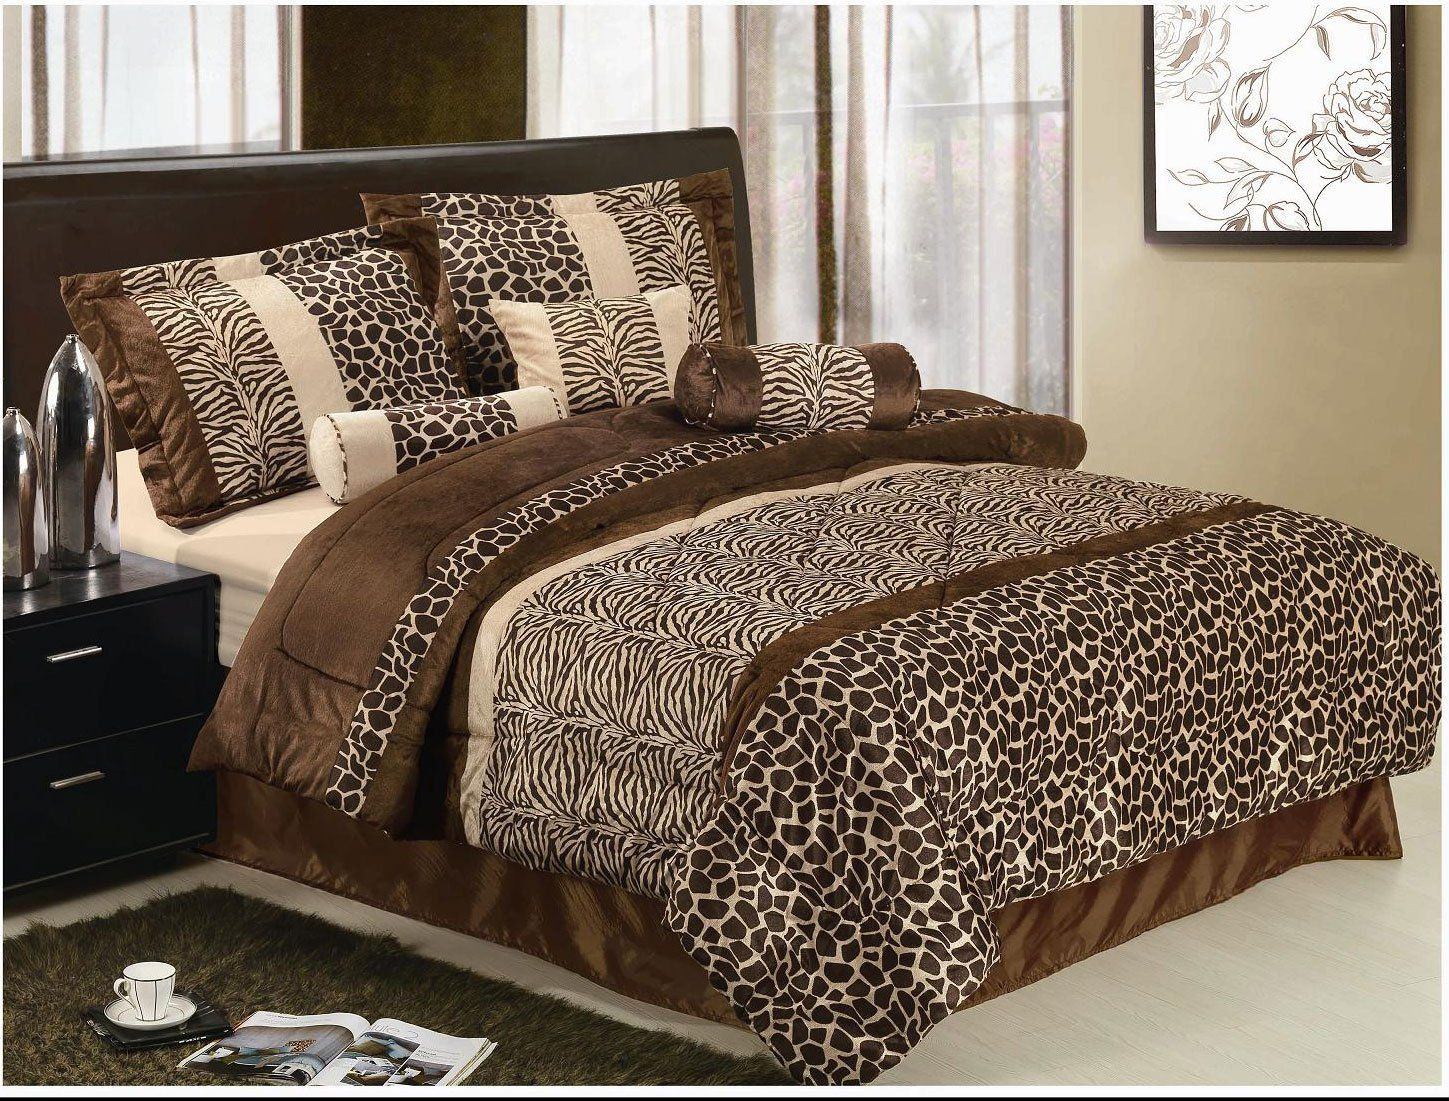 zebra themed bedroom ideas zebra print bedding bedroom decor